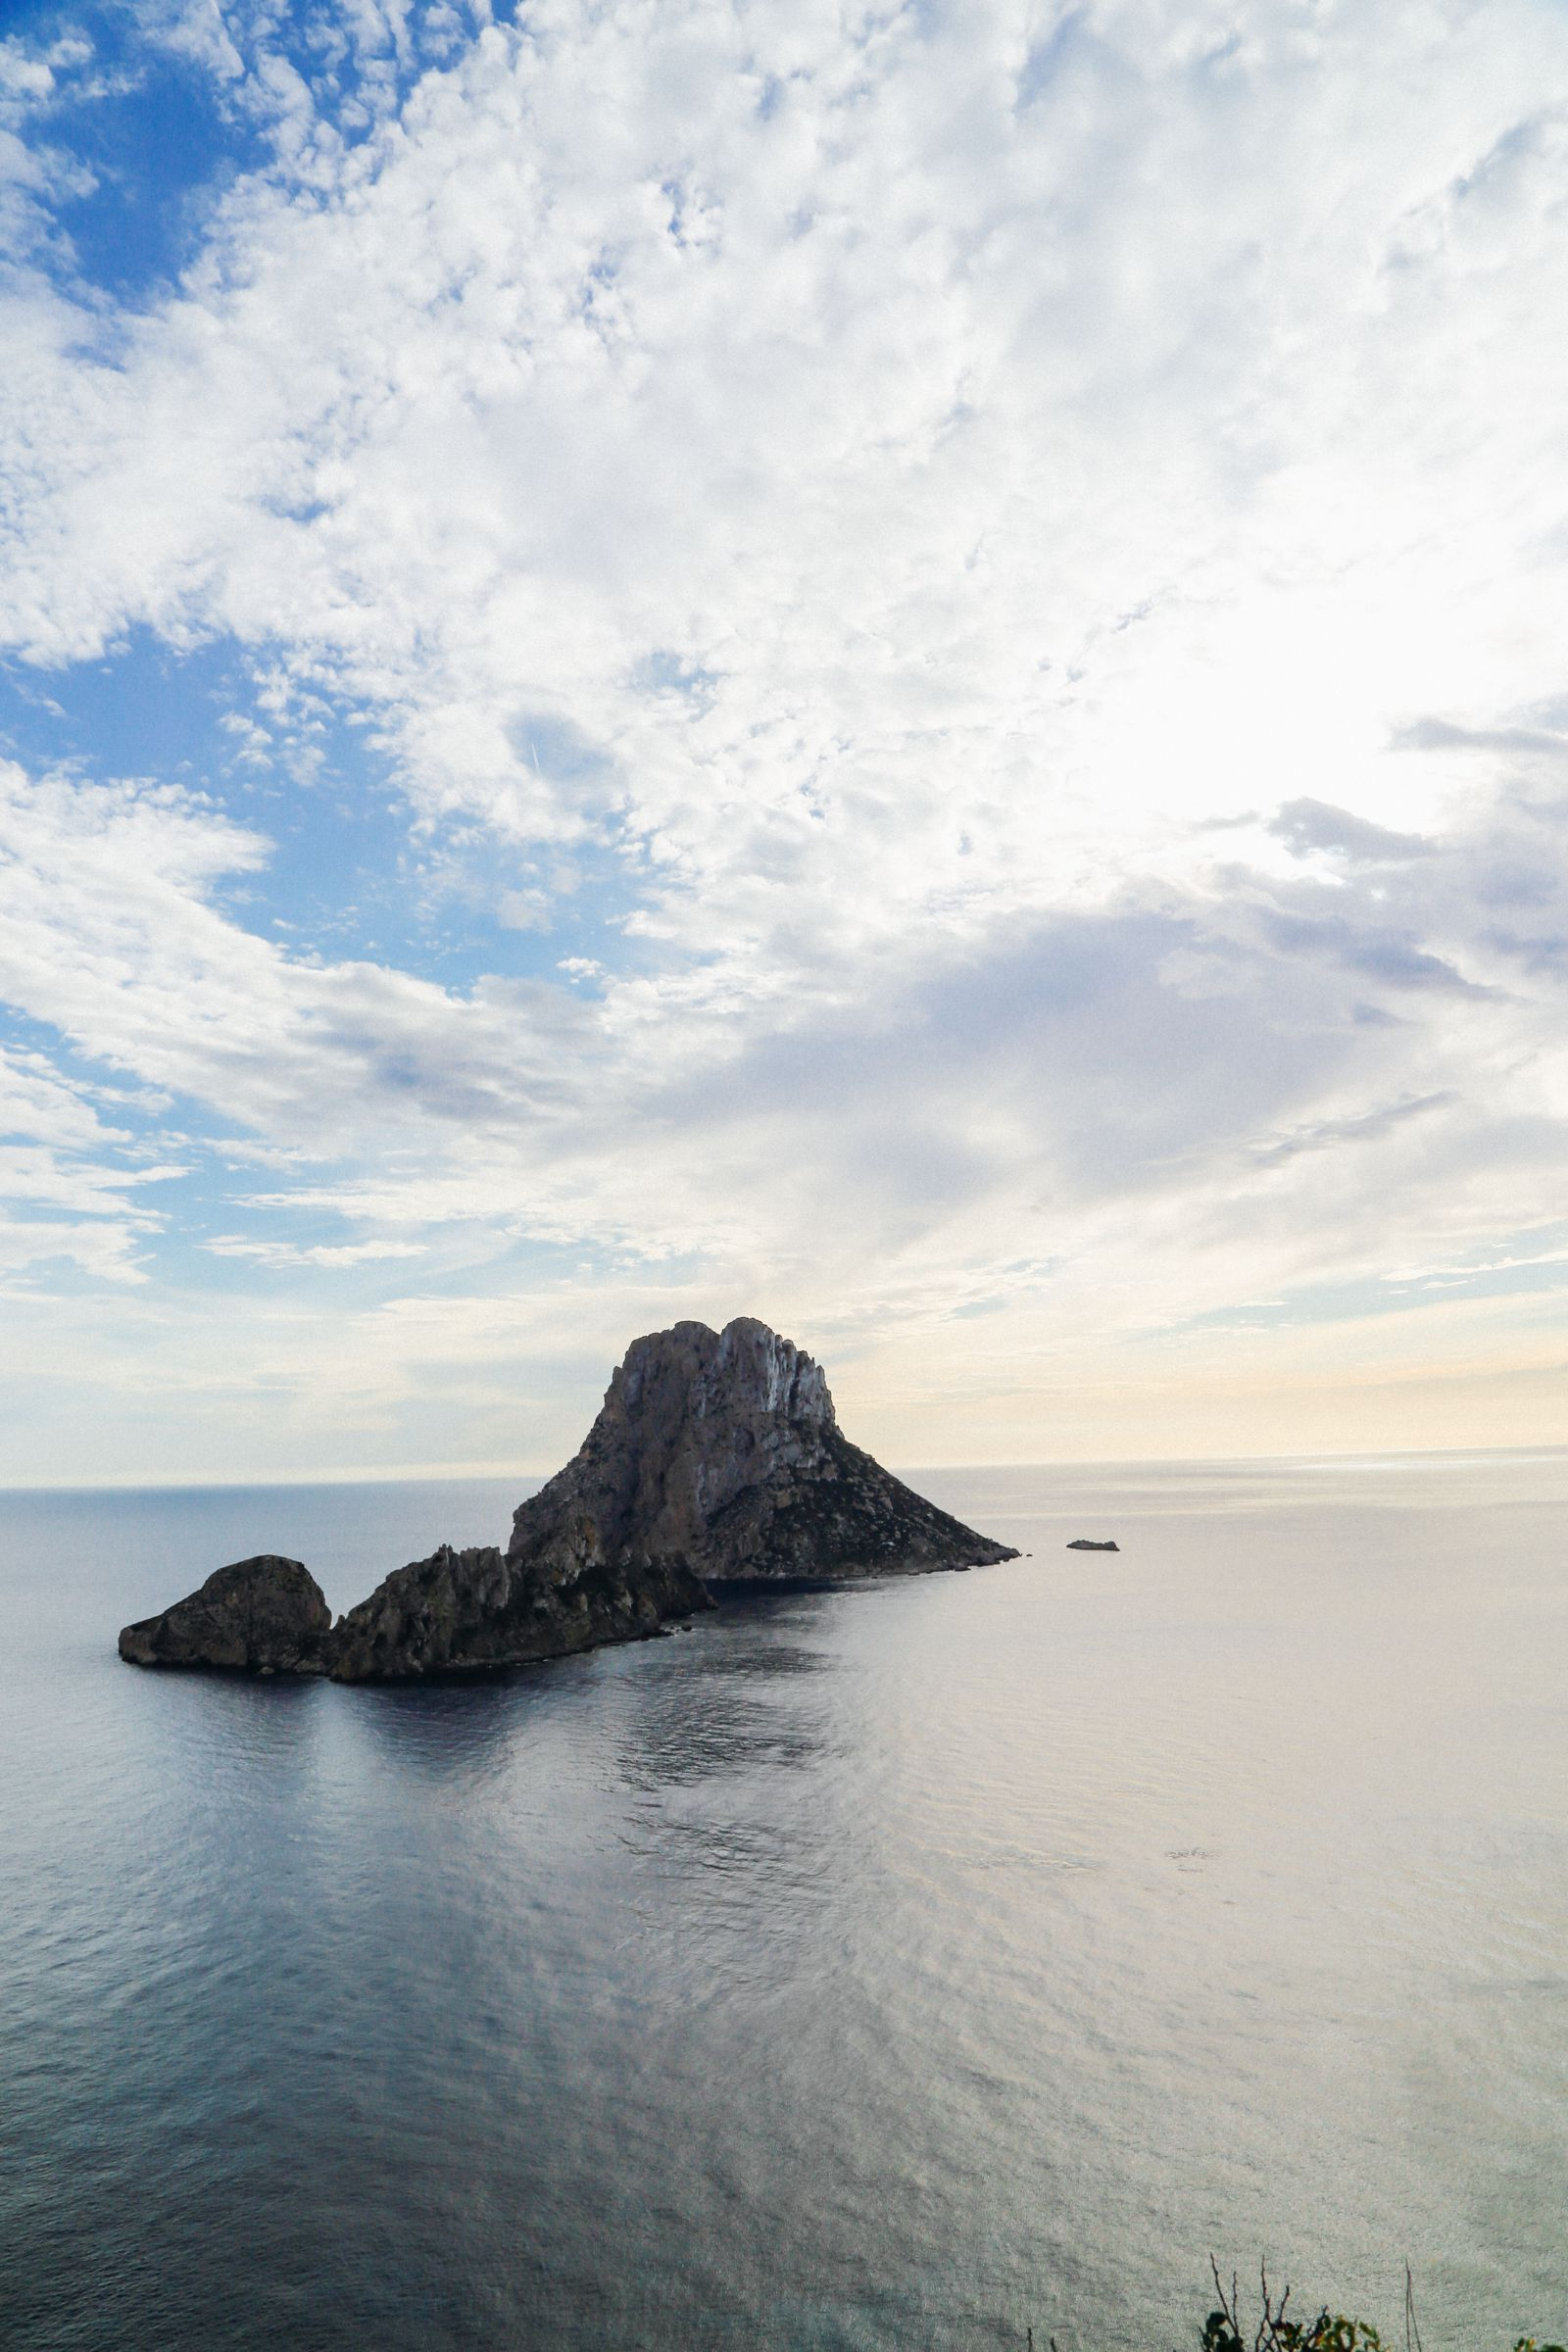 The Best Place To Watch The Sunset In Ibiza AND Where To Go For An Amazing 10 Course Gourmet Dinner! (10)